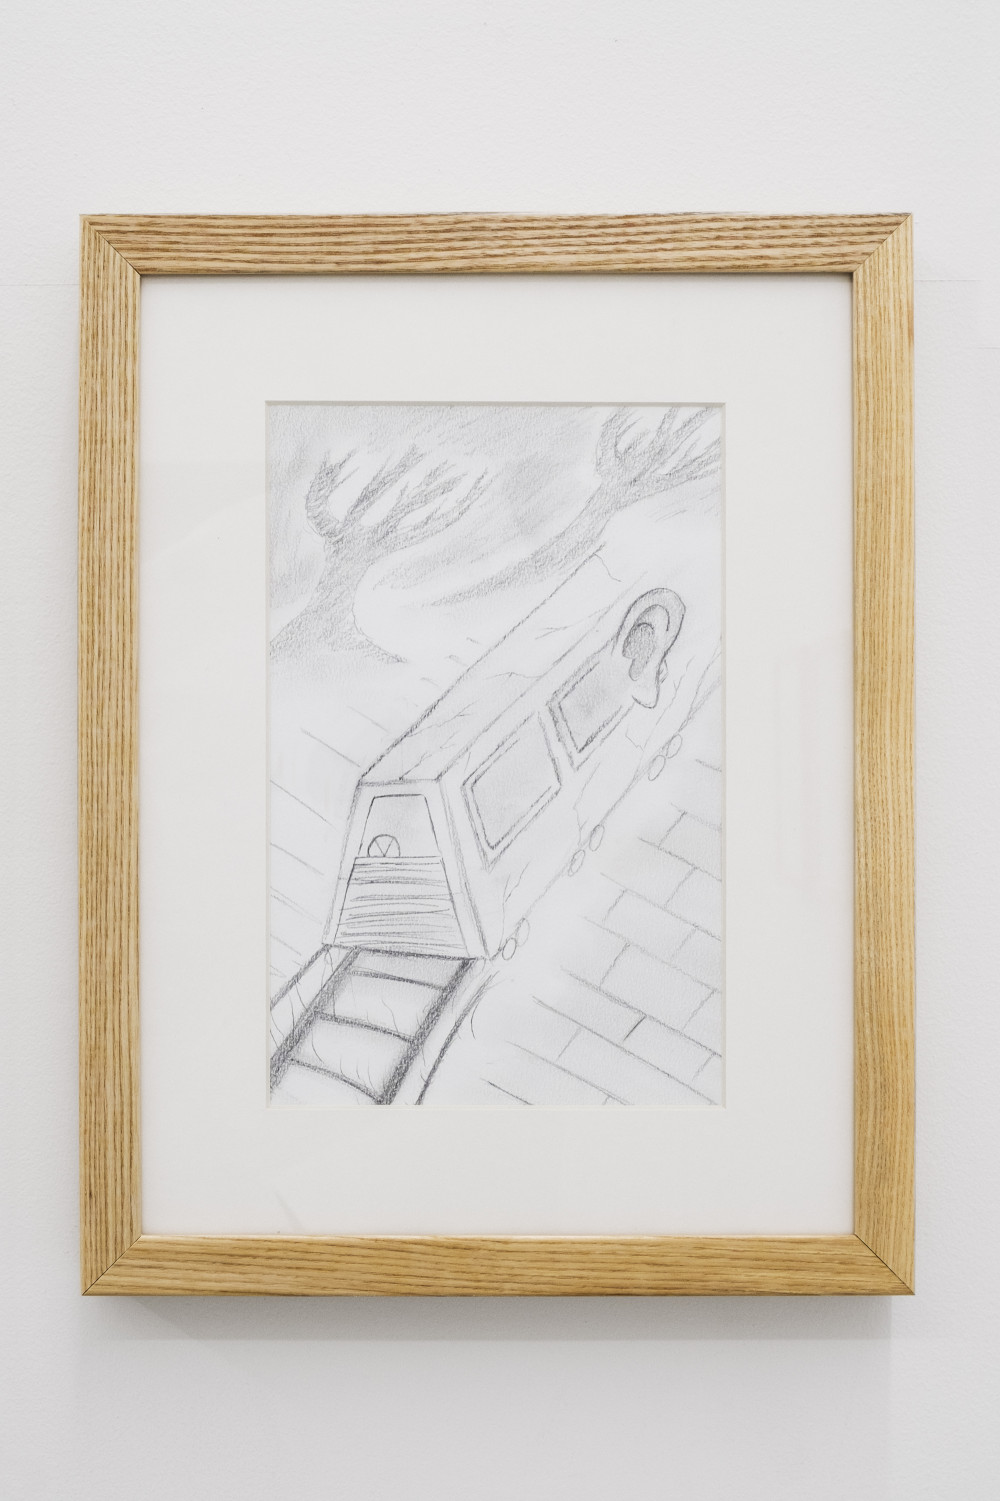 Quintessa Matranga The Grand Train, 2016 Graphite on paper